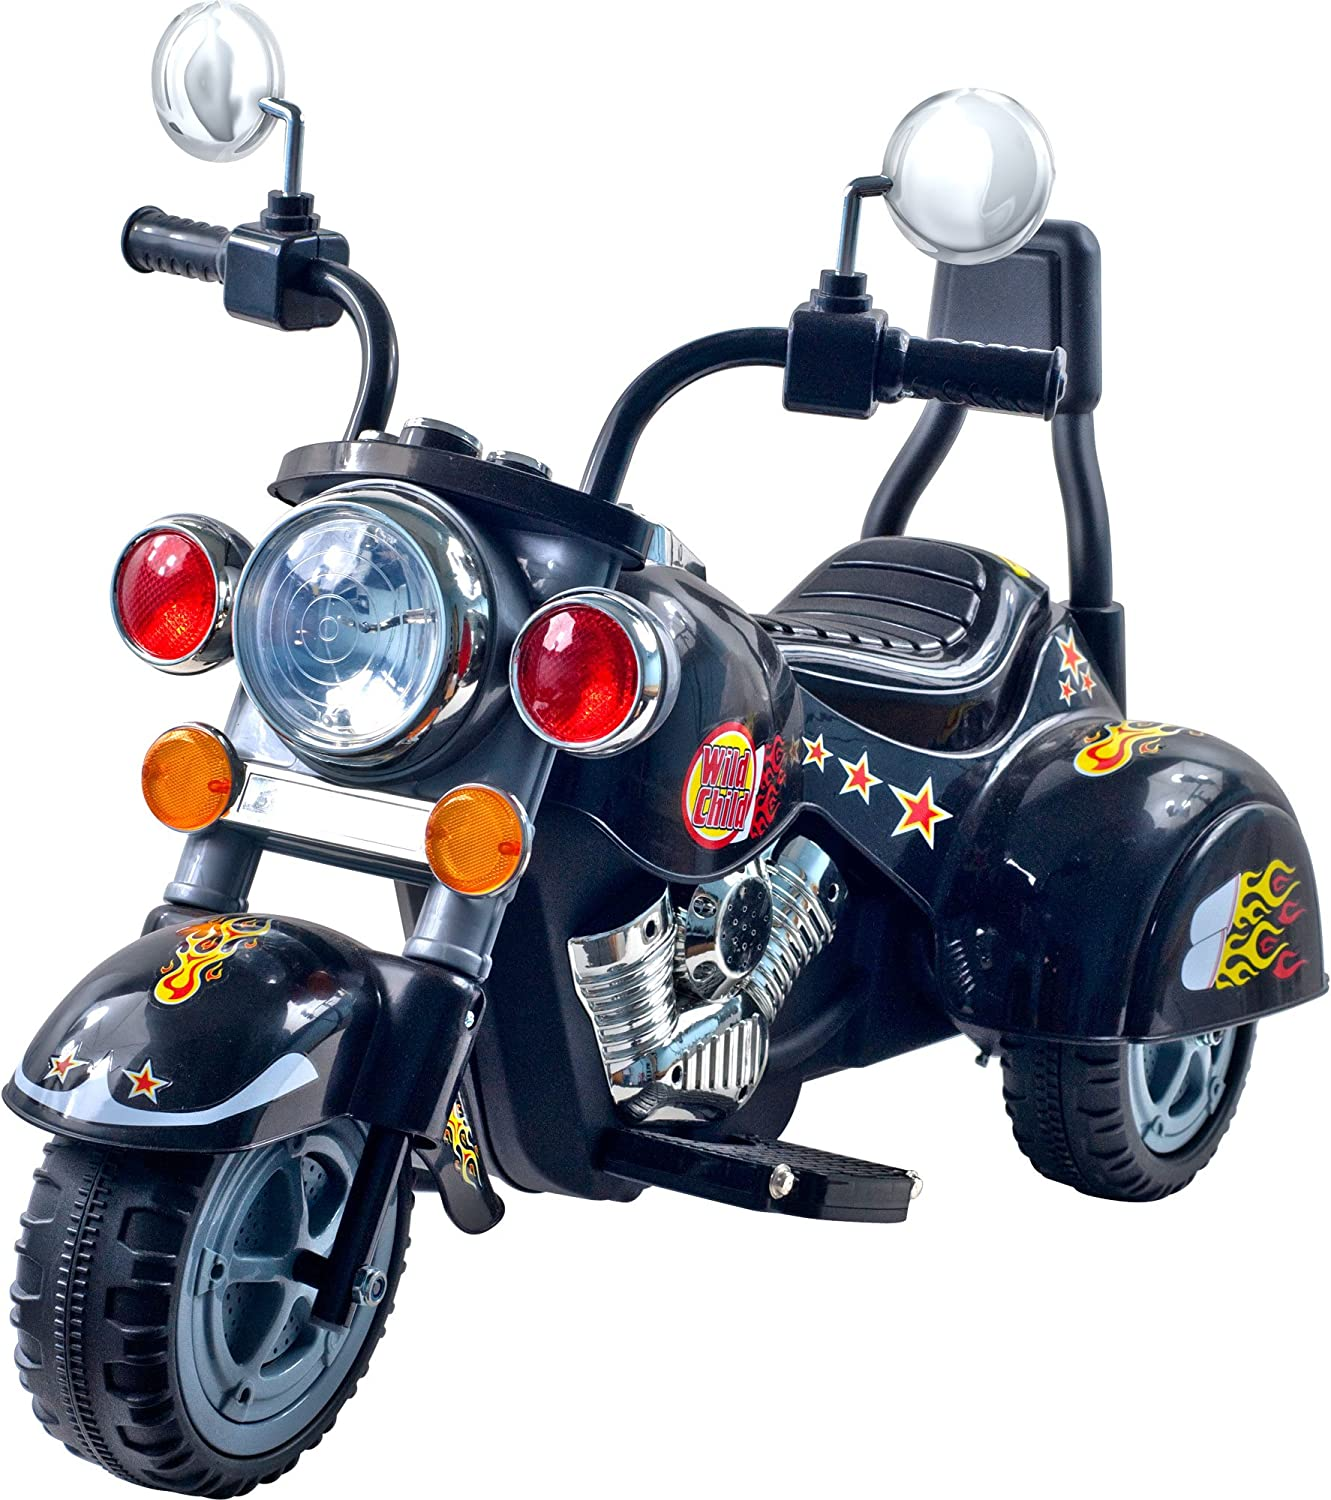 Amazon Com 3 Wheel Chopper Trike Motorcycle For Kids Battery Powered Ride On Toy By Lil Rider Ride On Toys For Boys And Girls Toddler And Up Black Toys Games